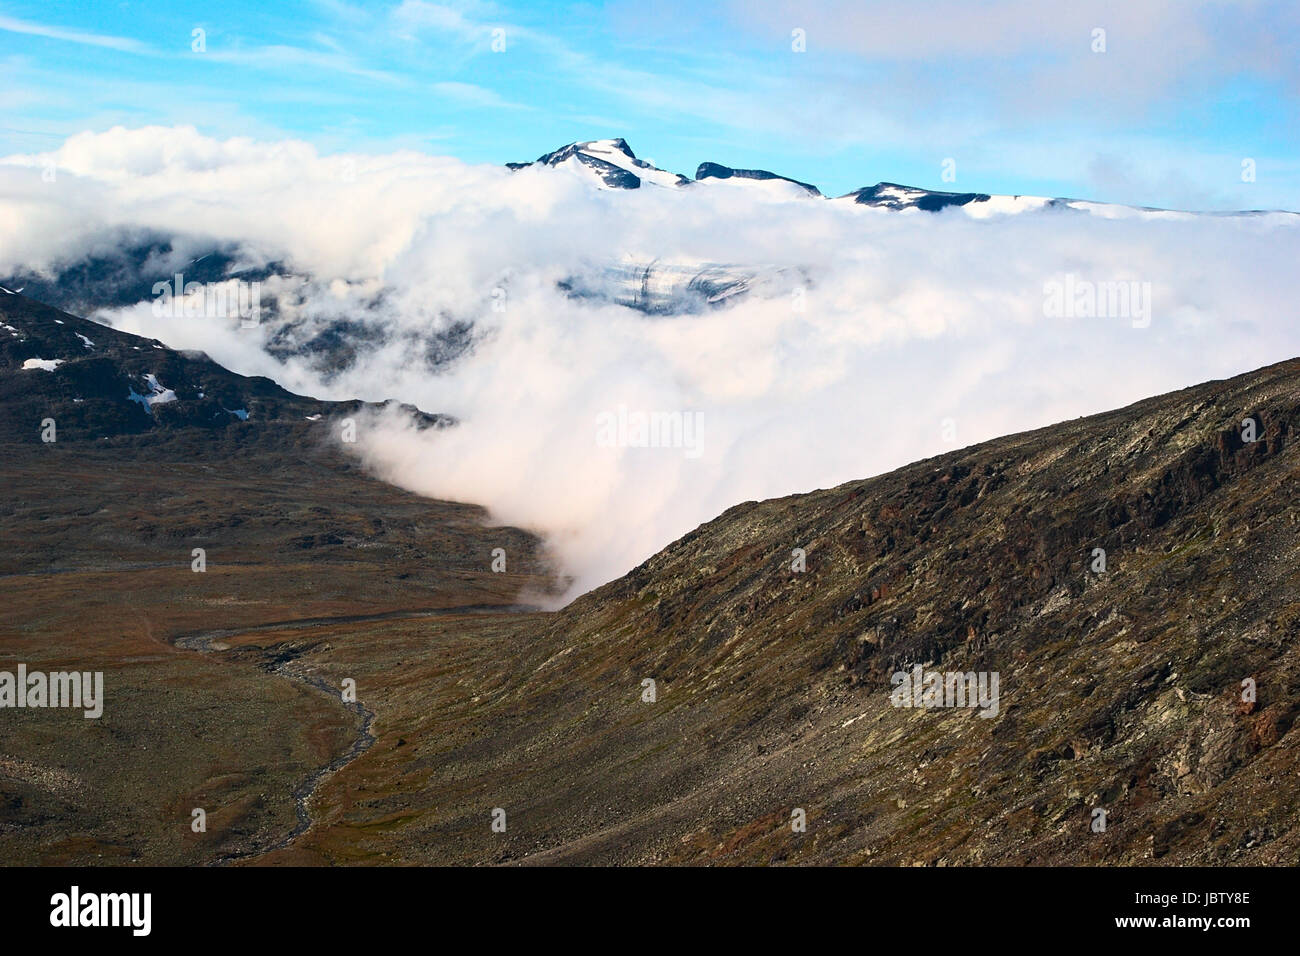 View onto Galdhopiggen from the path to Glittertind in the Jotunheimen National Park in Norway. Galdhopiggen is - Stock Image